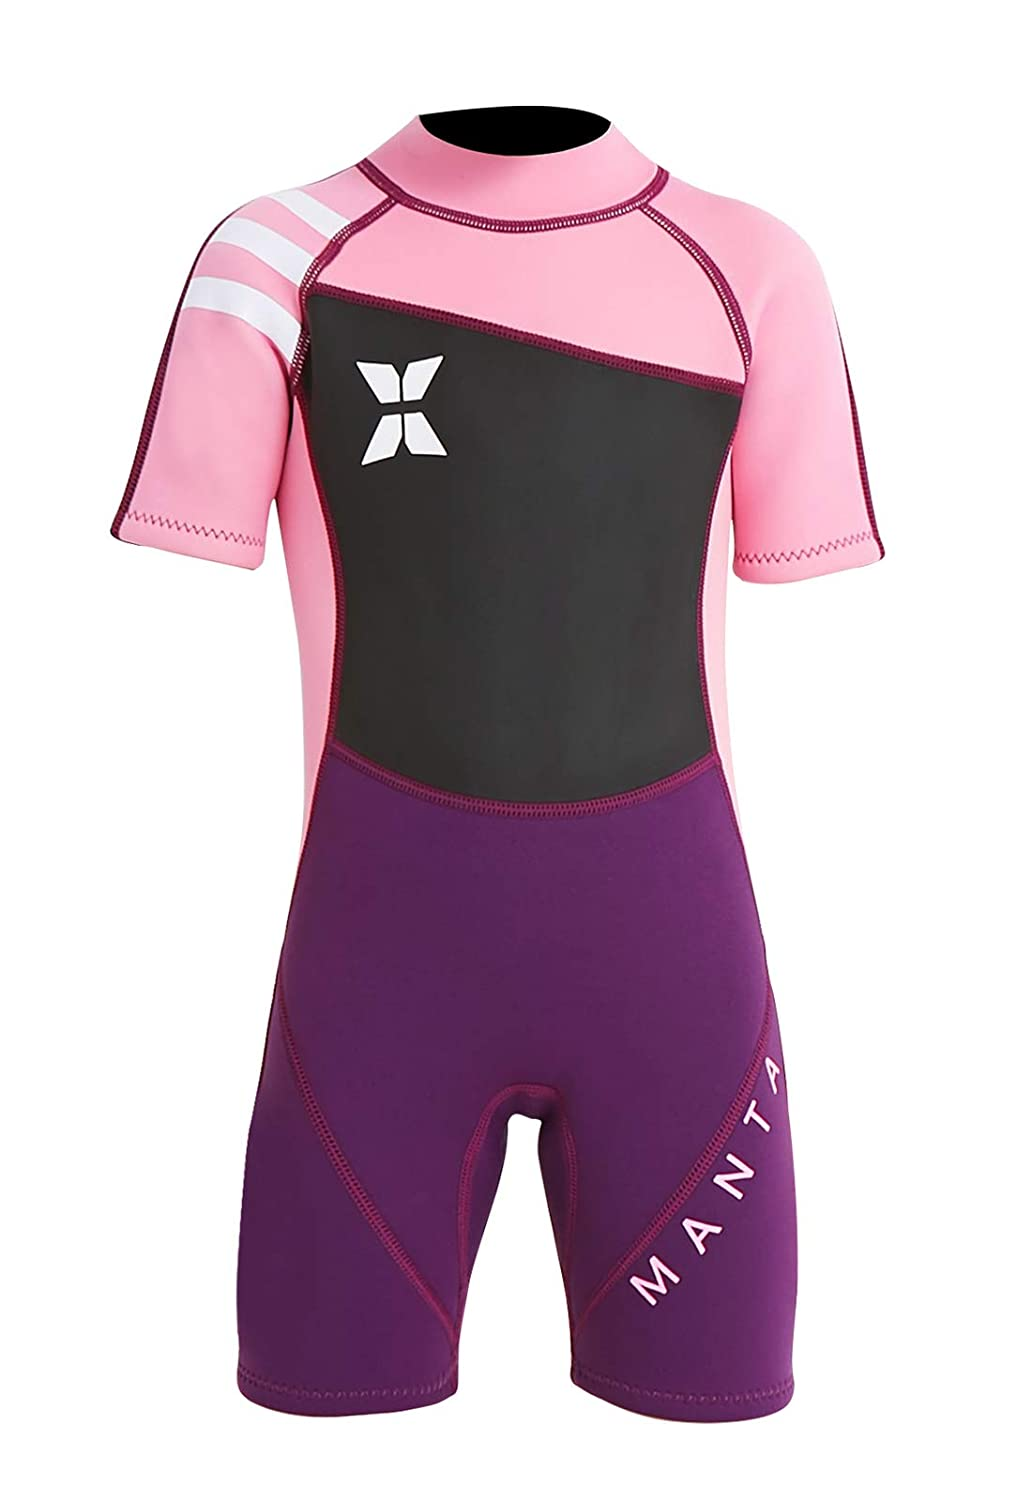 Dive & Sail Kids 2.5 MM Warm Wetsuit One Piece UV保護Shorty Suit B07CJMWXWW ピンク L(Height 45''--49'') L(Height 45''--49'')|ピンク